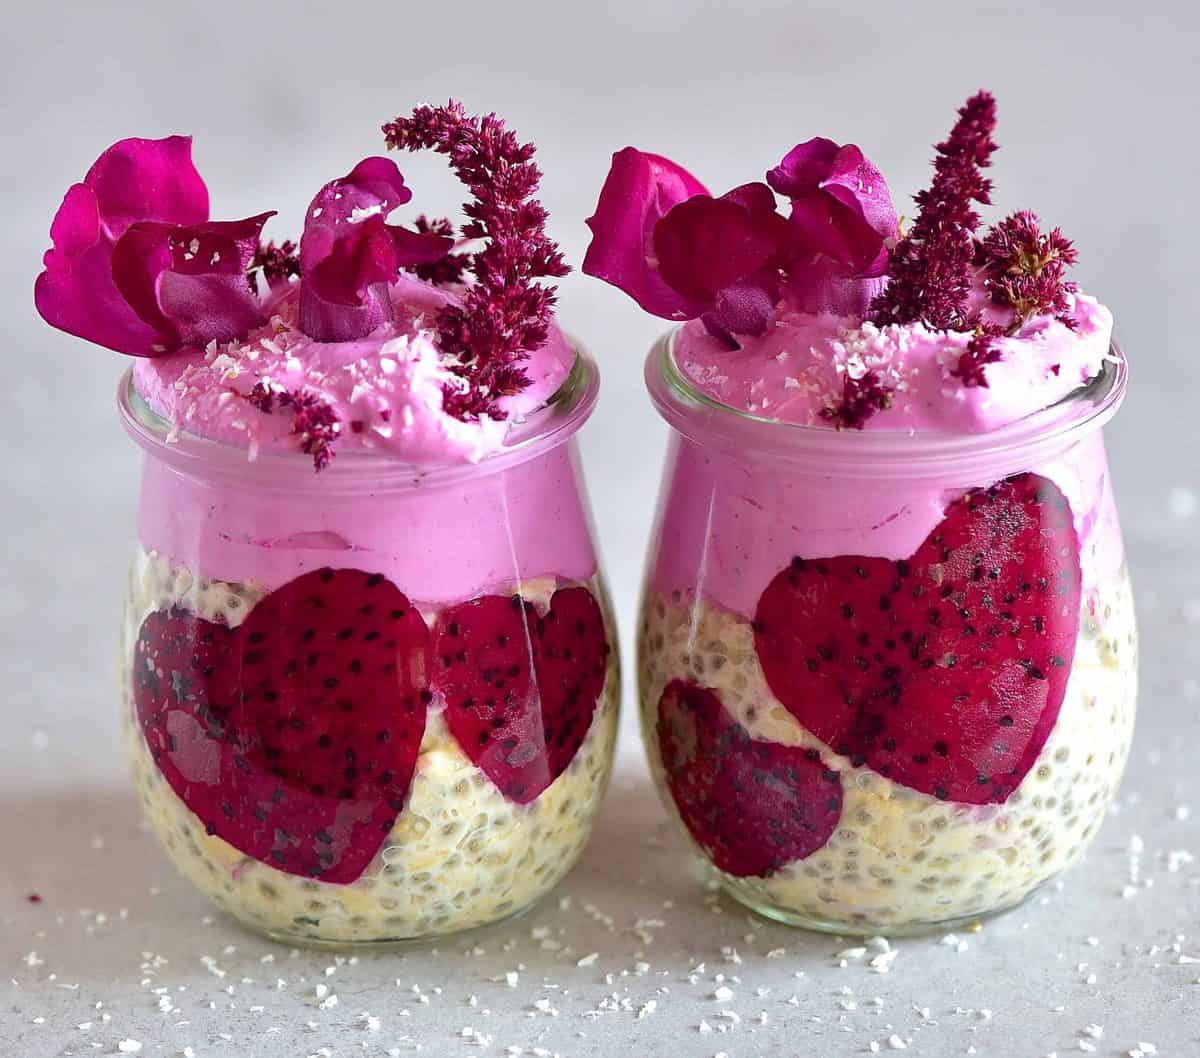 Two small jars with overnight oats pink dragon fruit yogurt pink dragonfruit hears and edible flowers as decoration